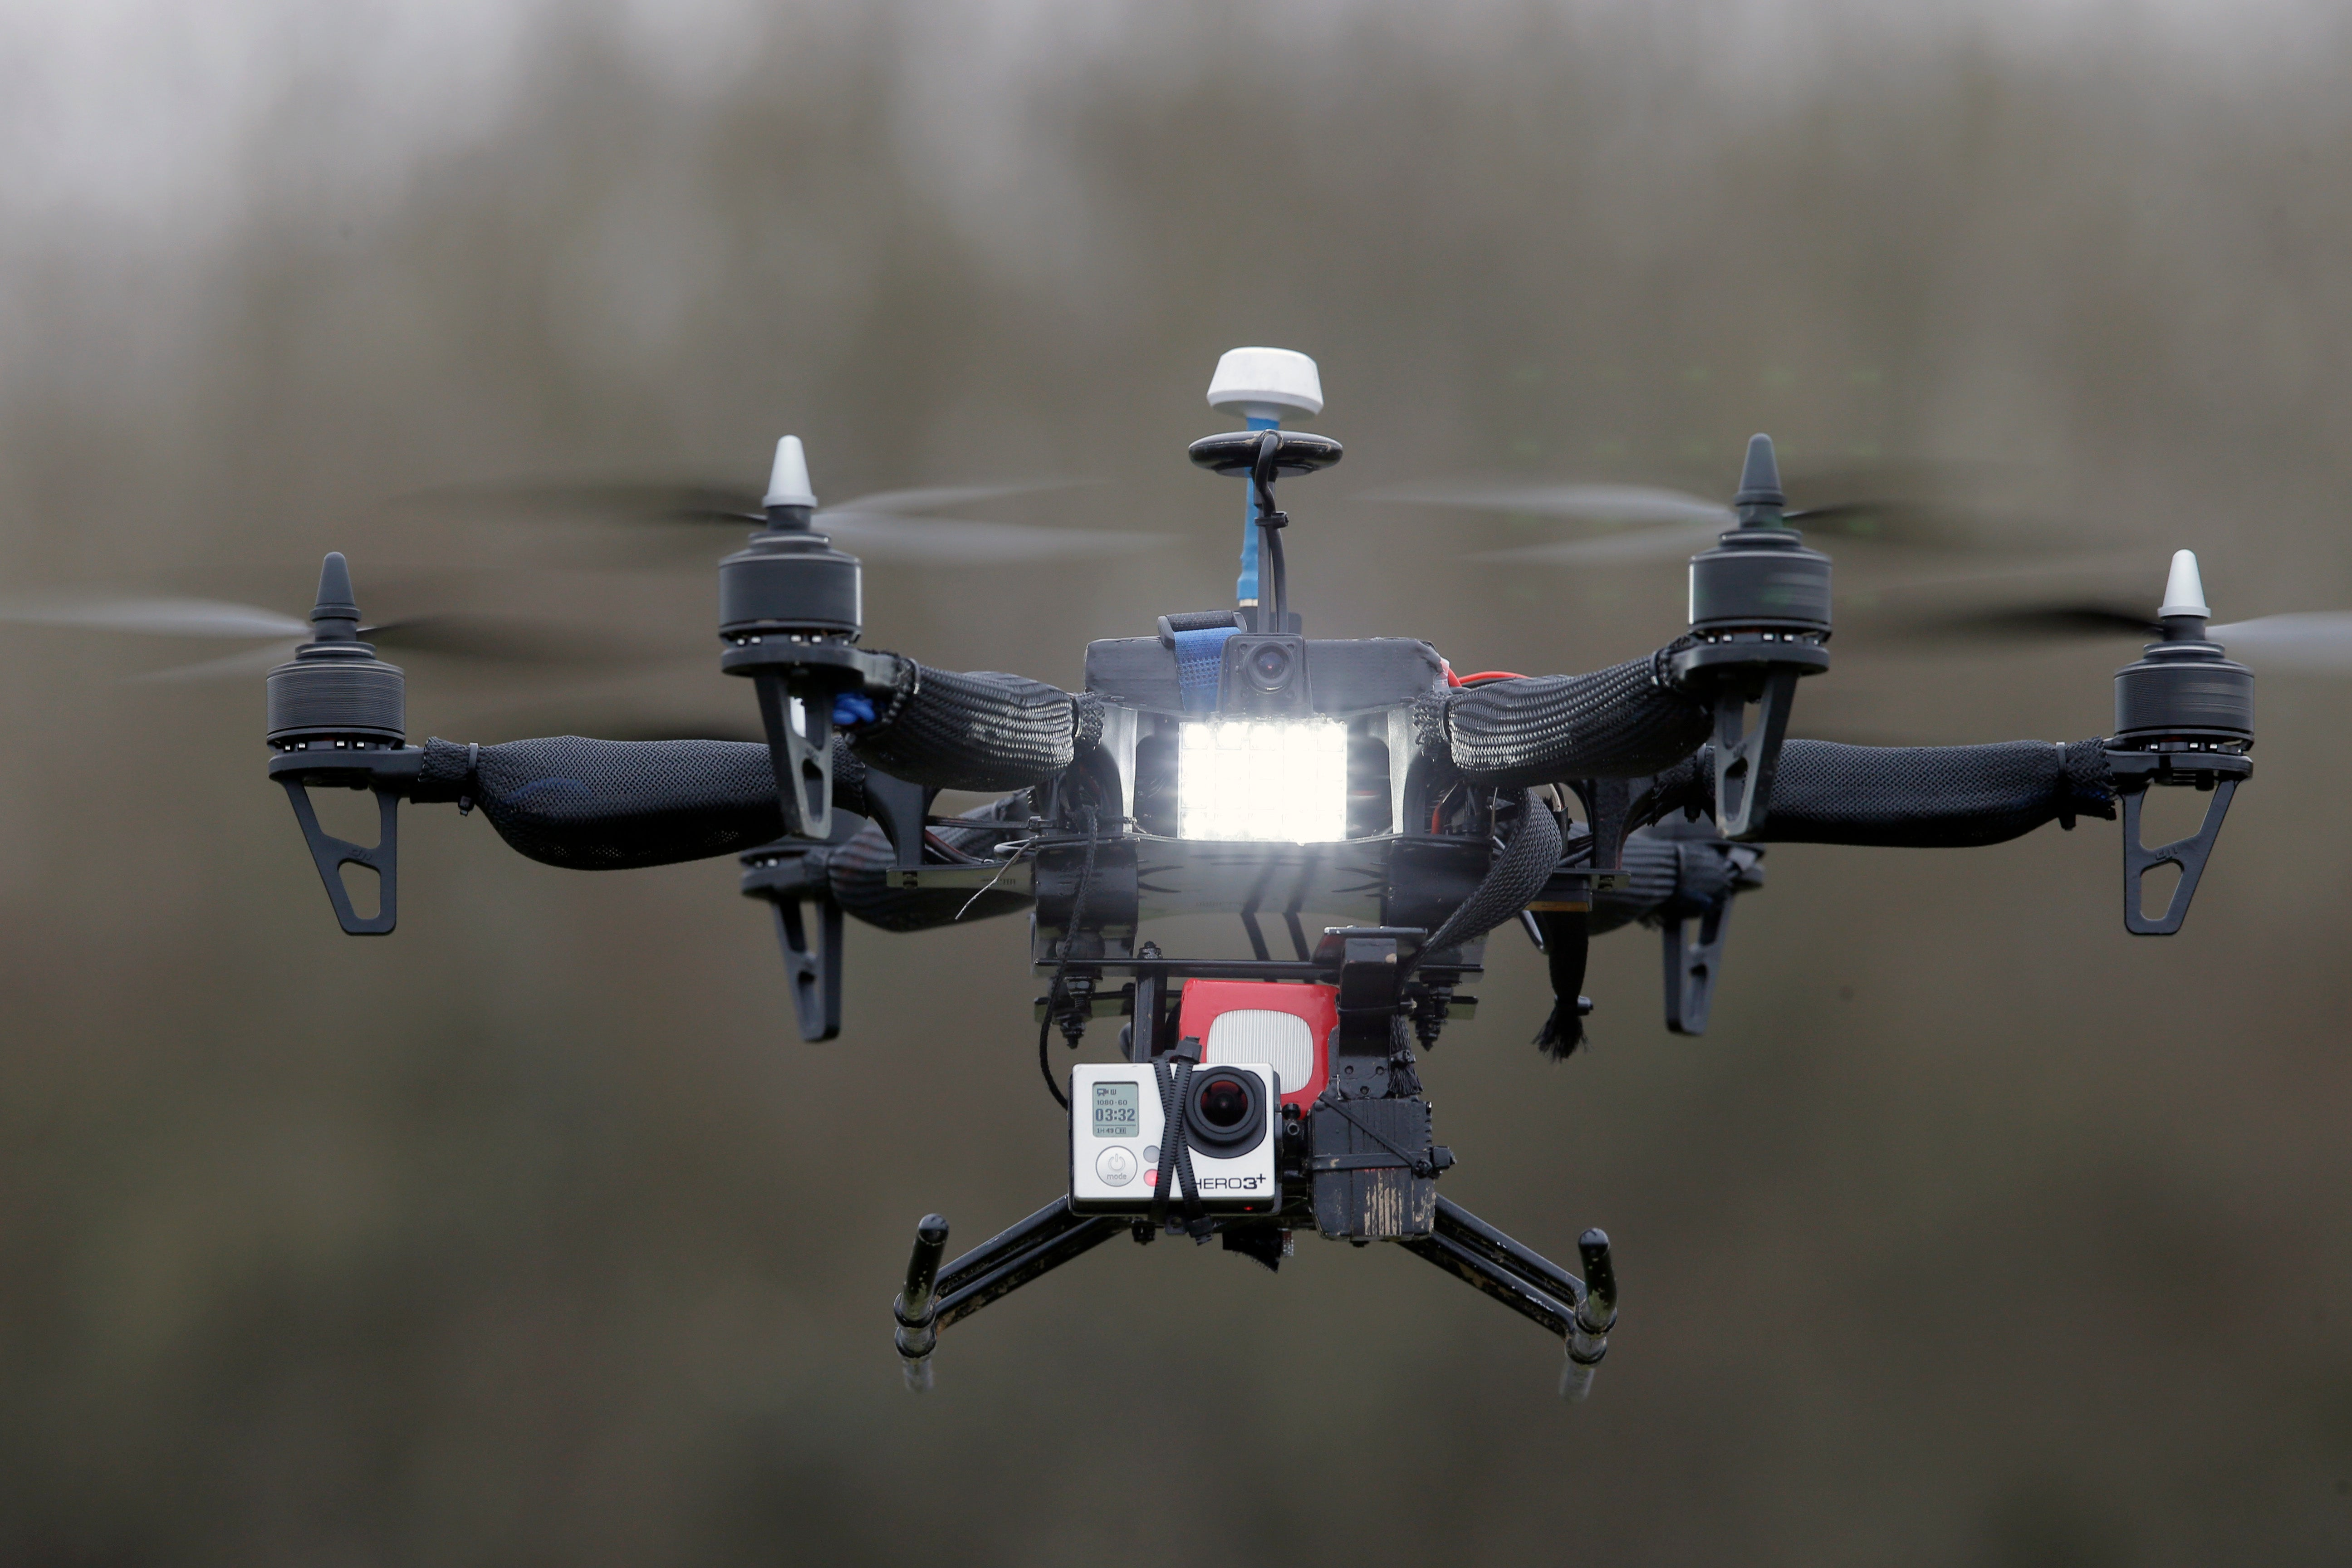 Journalists Arrested In France For Flying Drones